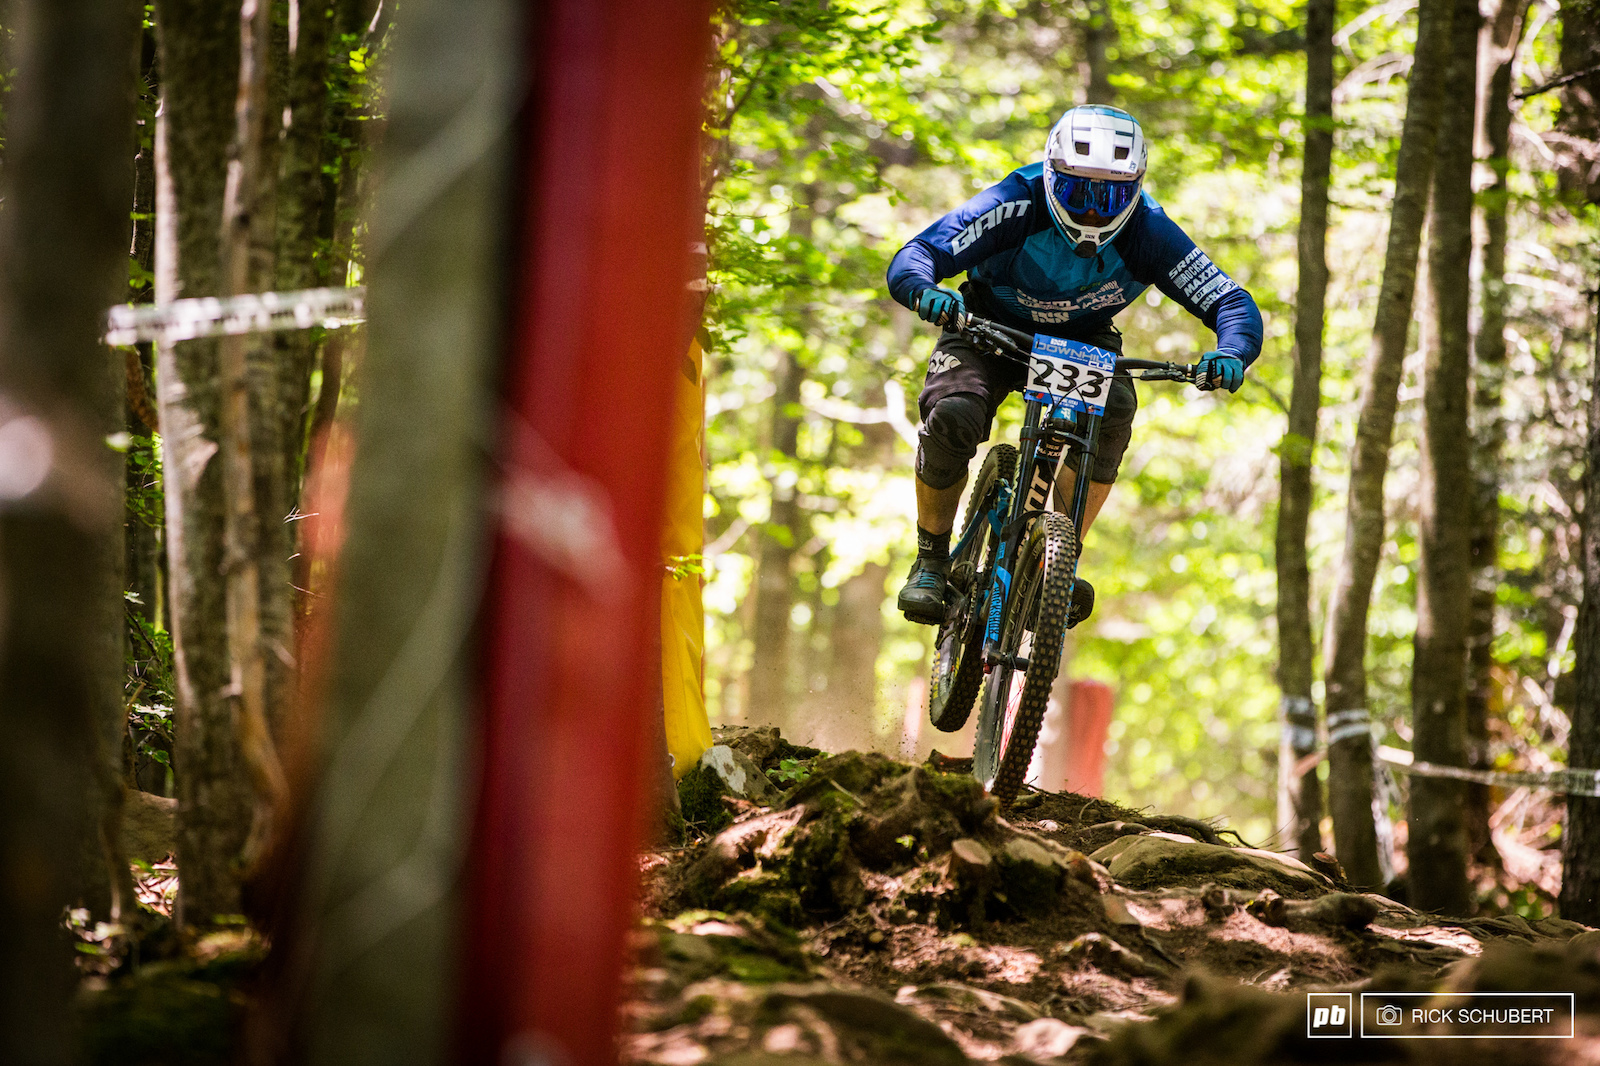 Benjamin Herold kept it steady on the long track and took the win in the masters category